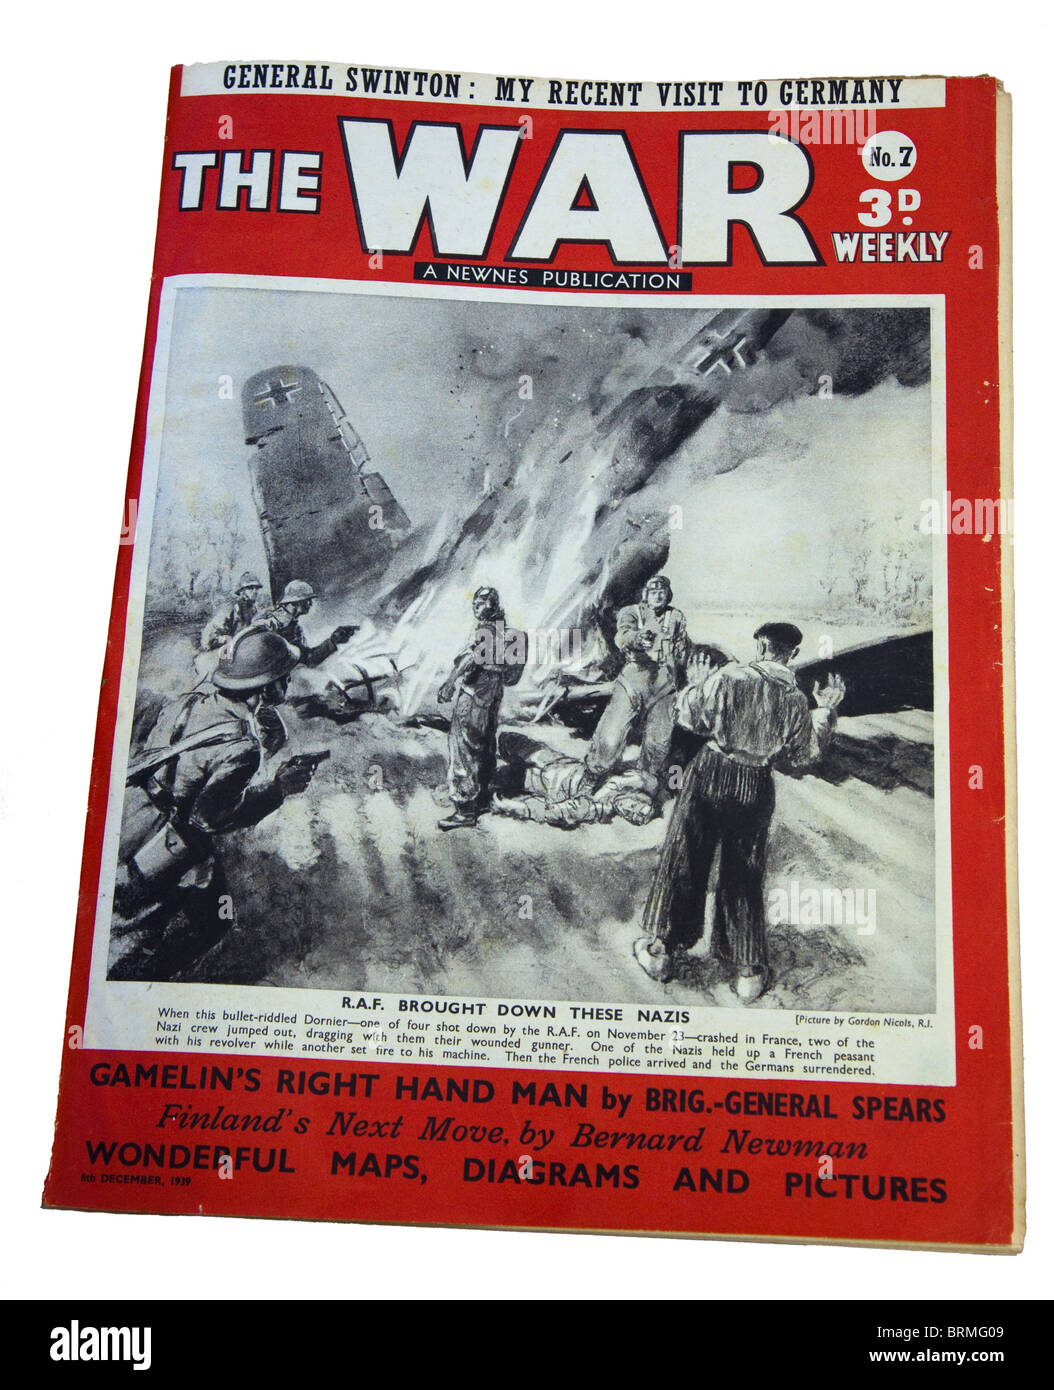 Front cover of Second World War magazine The War Weekly dated 8 September 1939 showing Nazi aicraft crashed in field - Stock Image